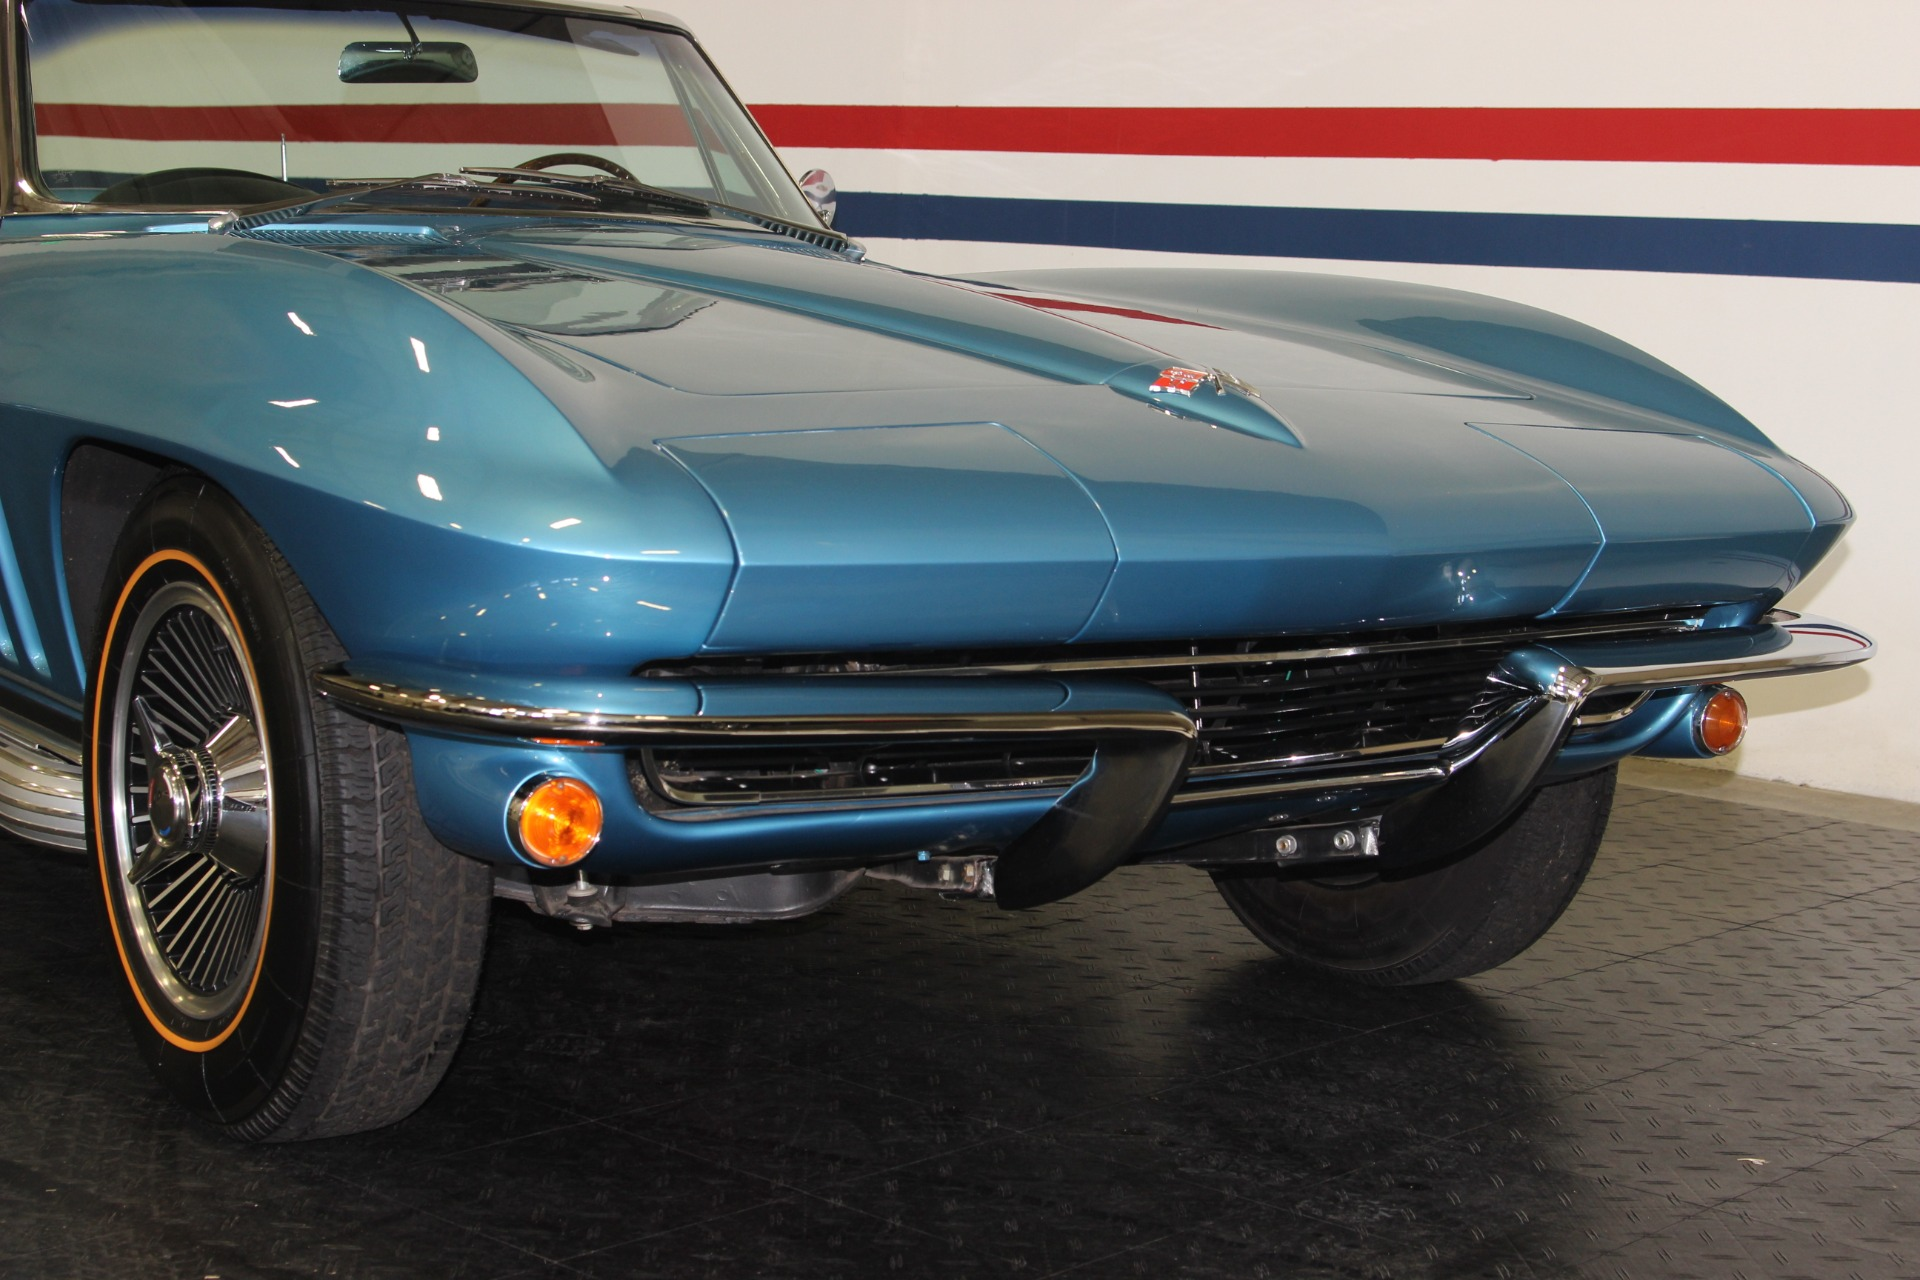 Used-1965-Chevrolet-Corvette-FI